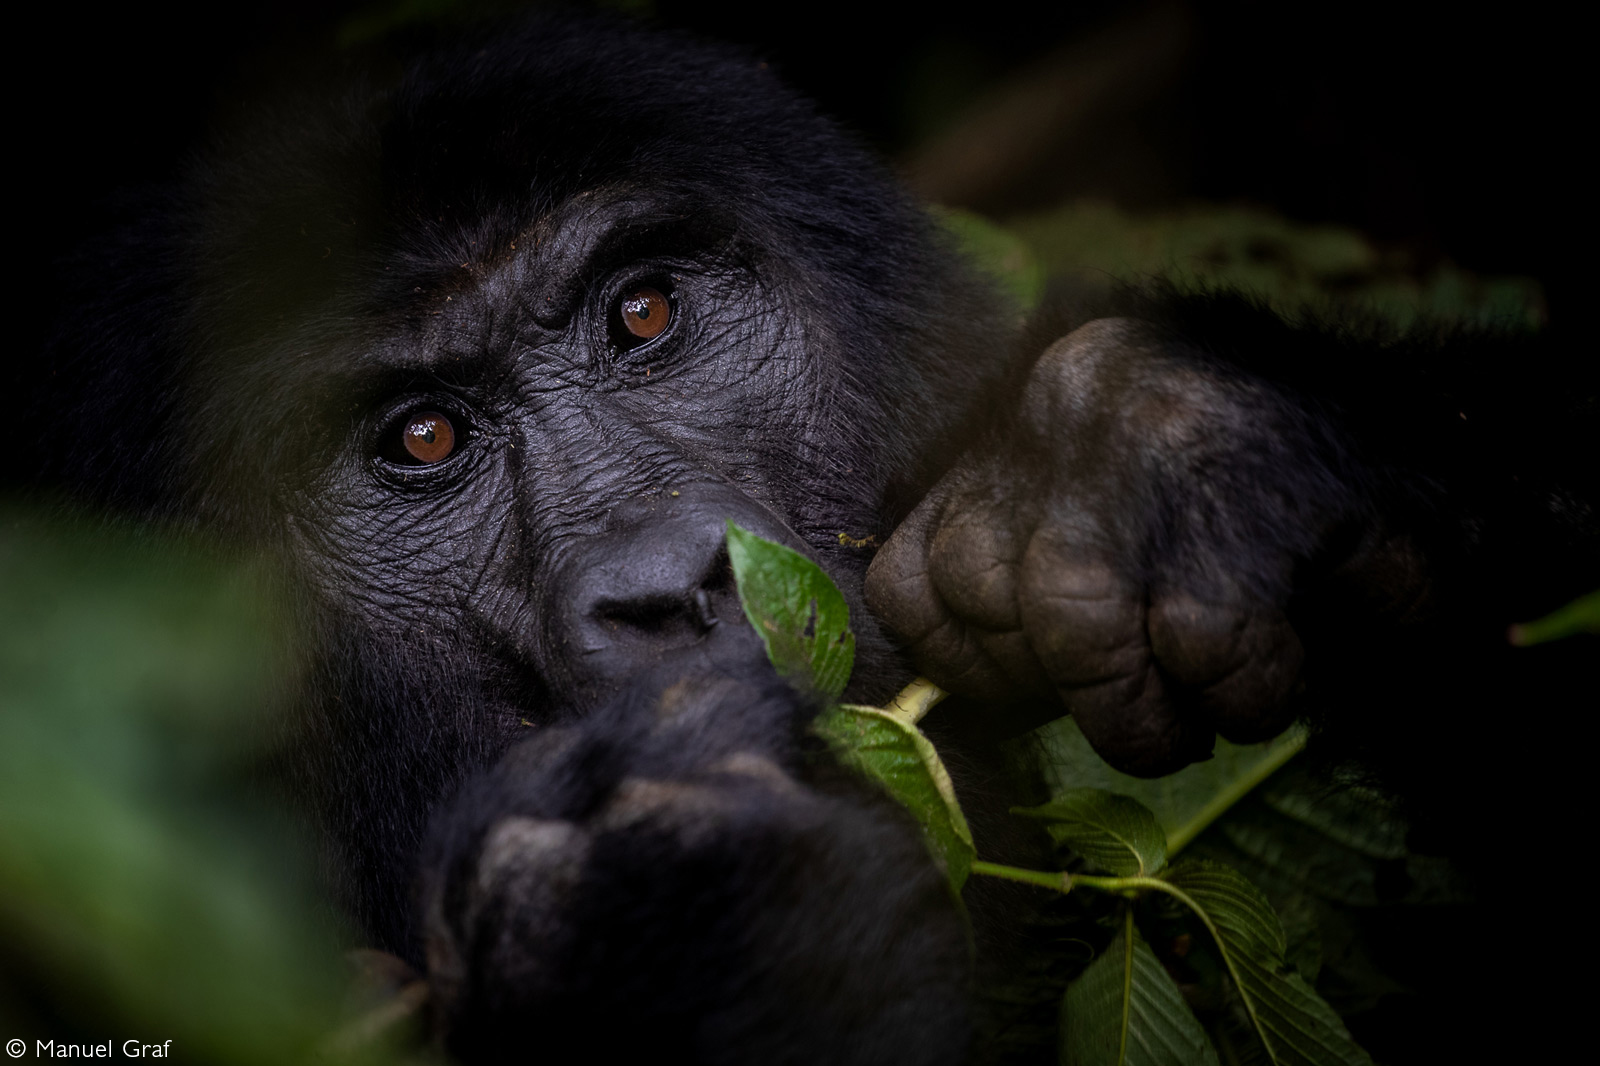 An impressive close up of a mountain gorilla. Bwindi Impenetrable National Park, Uganda © Manuel Graf